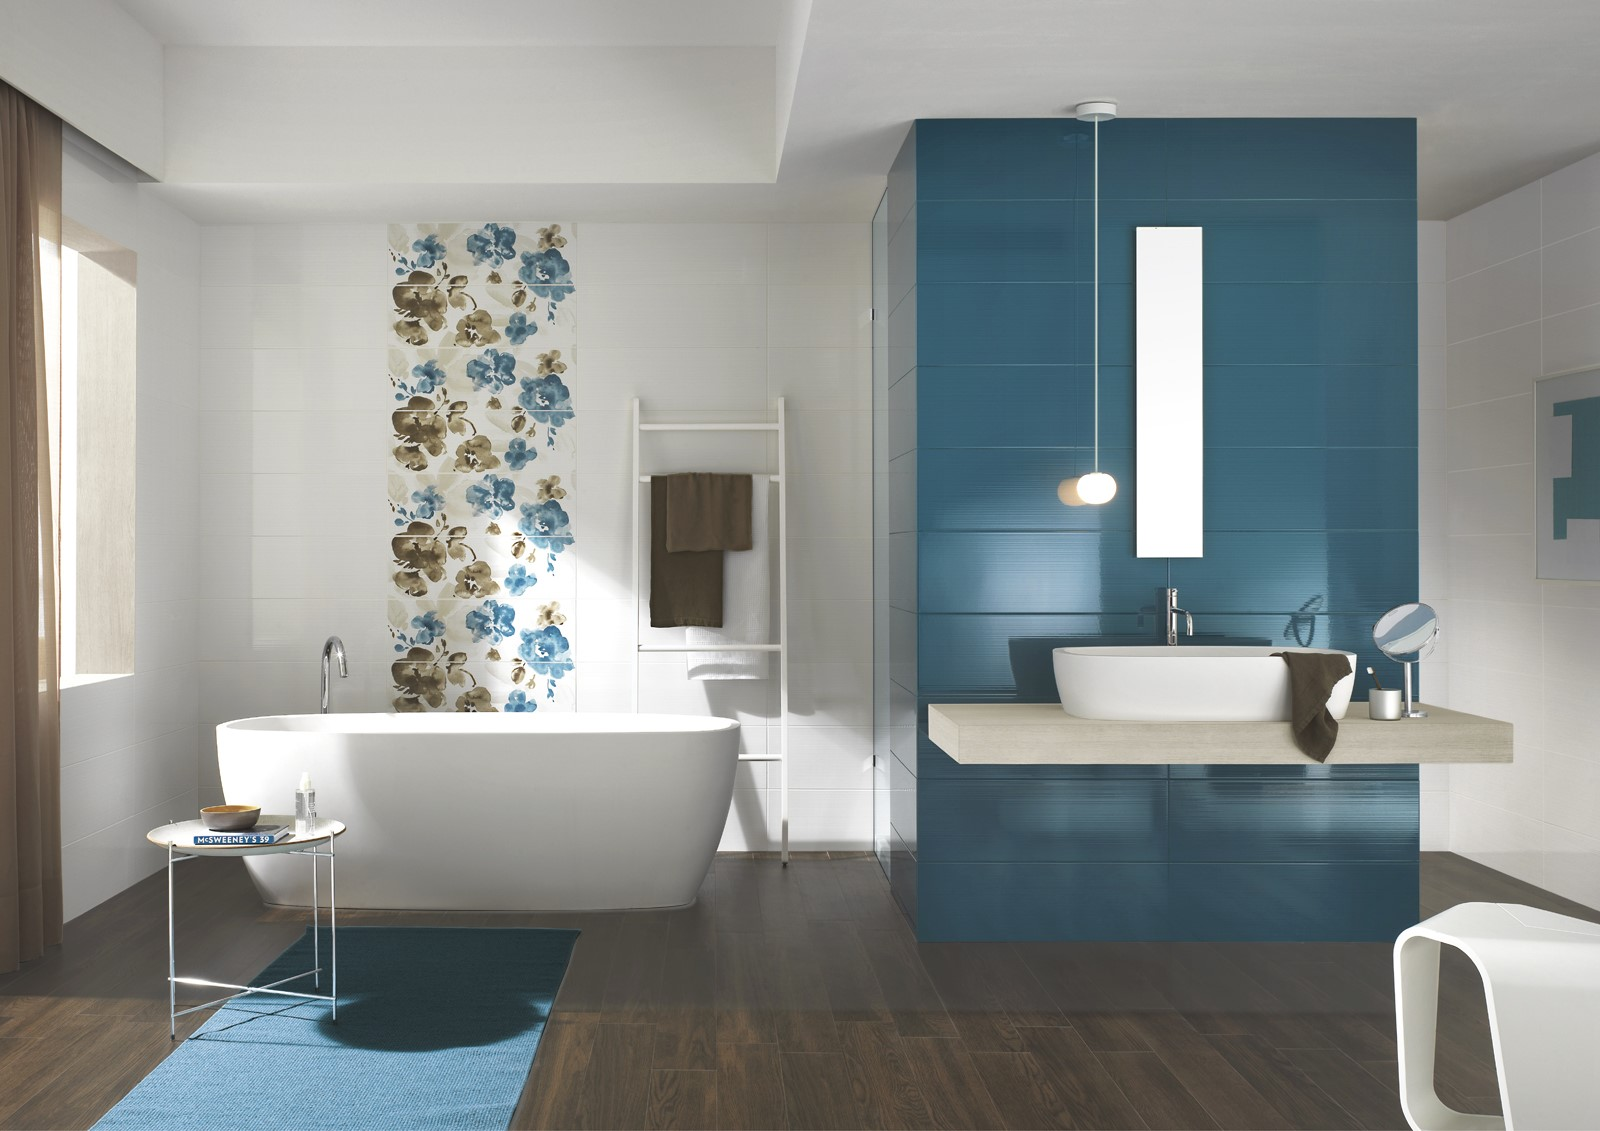 Bathroom concept d tile warehouse for Carrelage moderne pour salle de bain